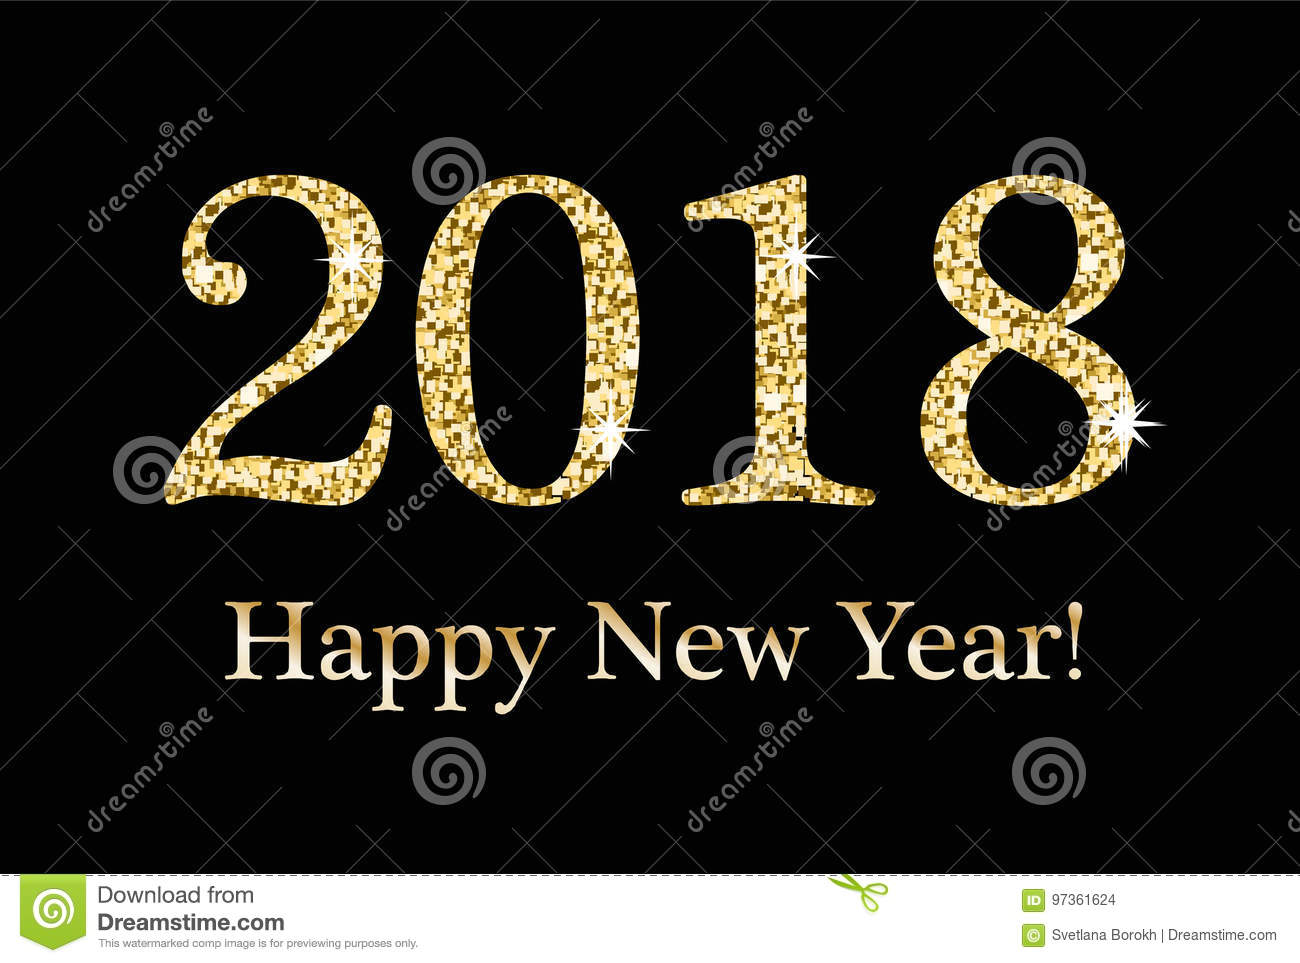 Happy New Year, Greeting card, template for your design. 2018 inscription from a gold glitter, sequins. Sparkling